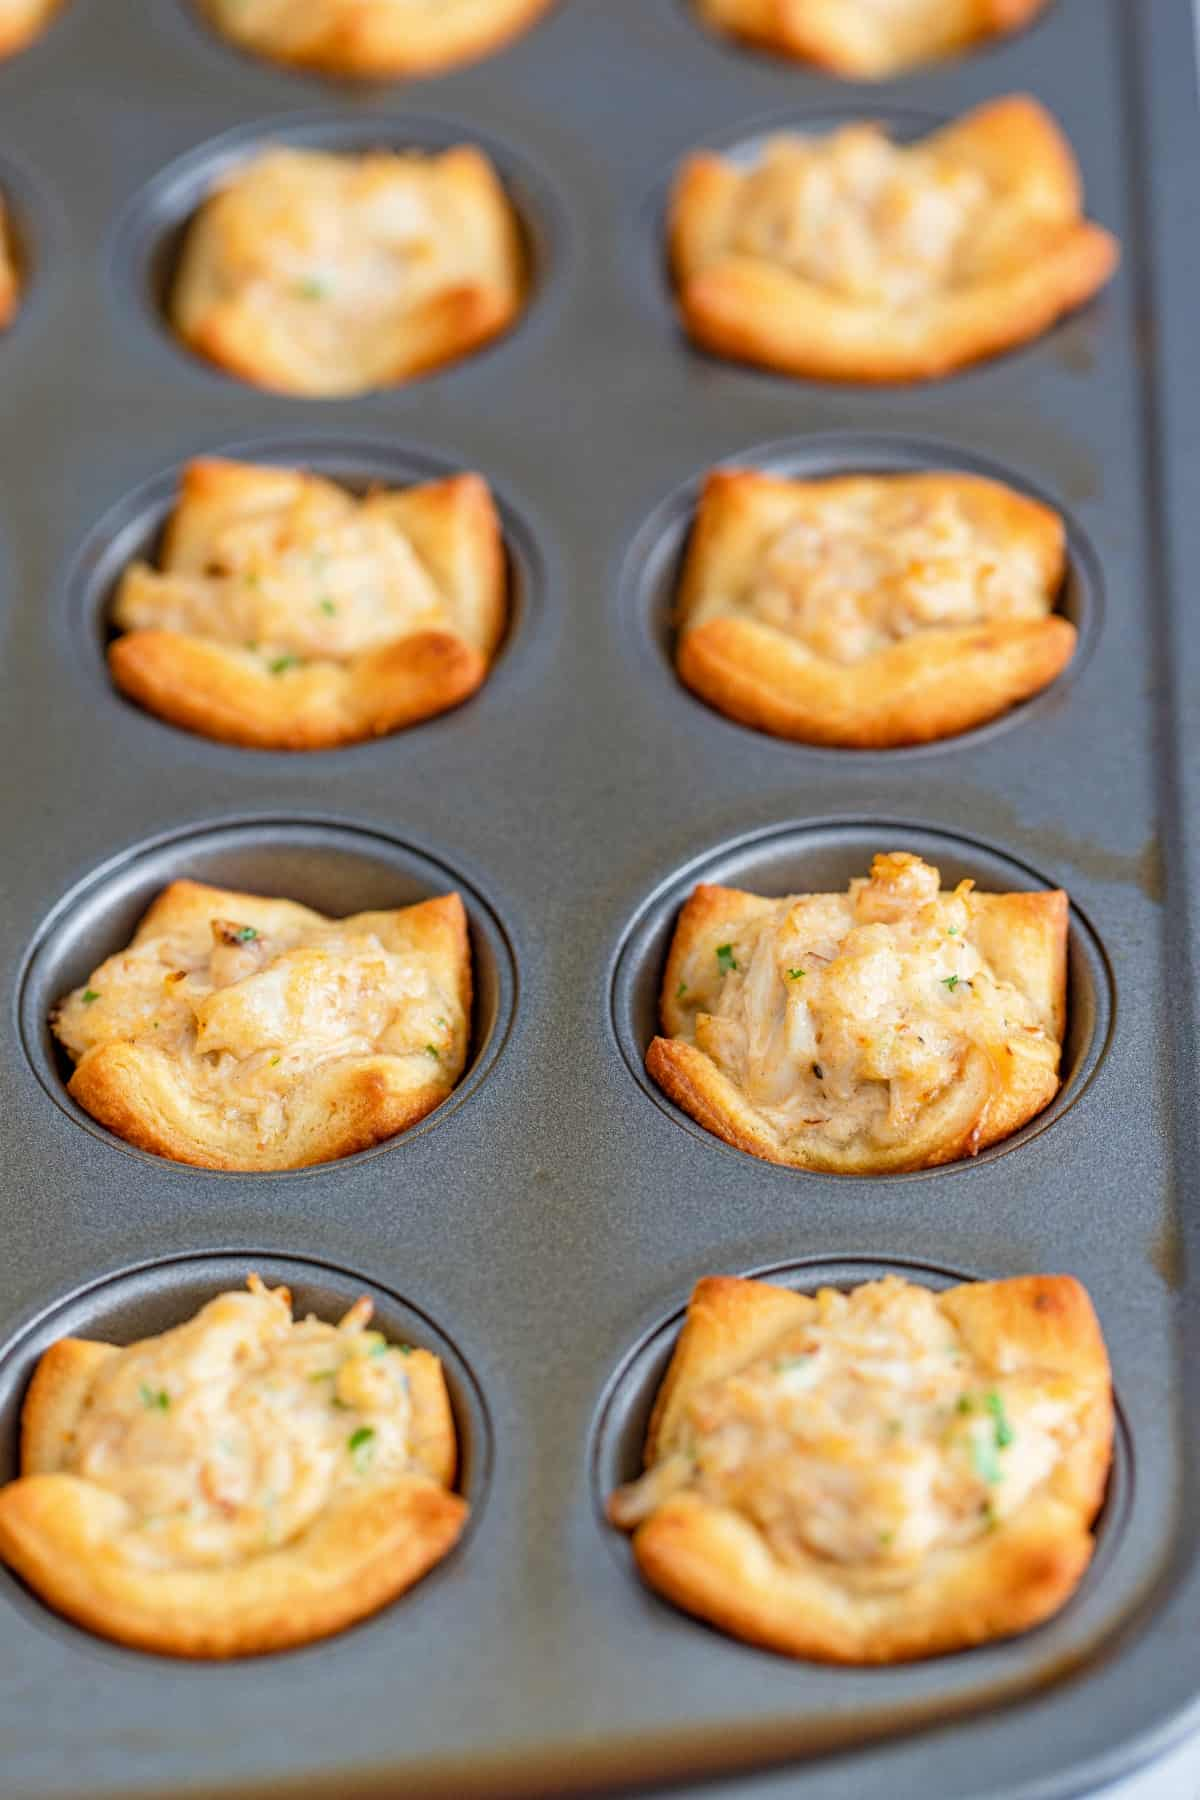 Crab puffs baked in a muffin tin.